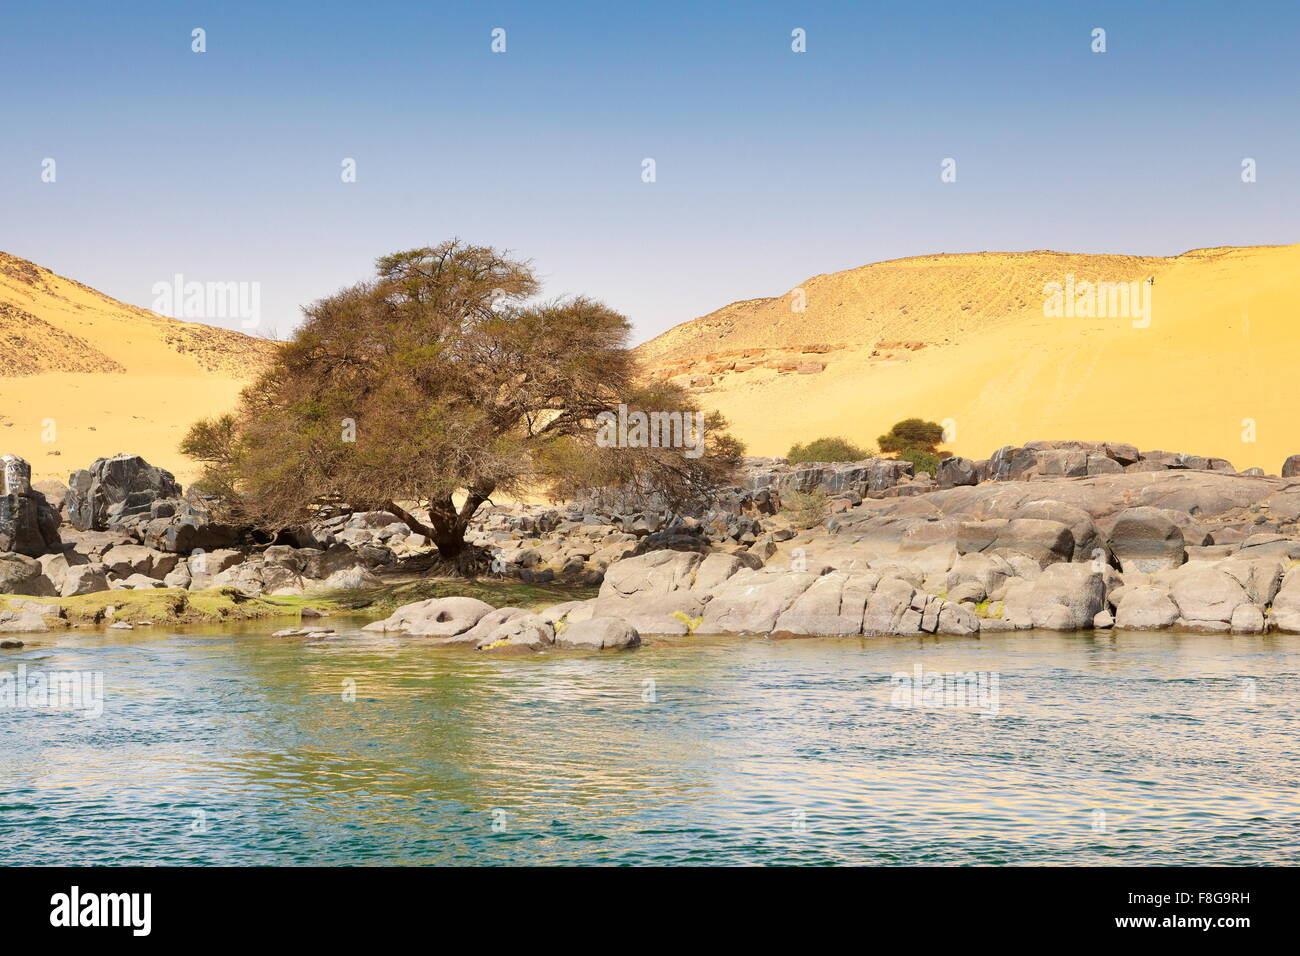 Egypt Bank Of The Nile River Protected Area Of The First Cataract